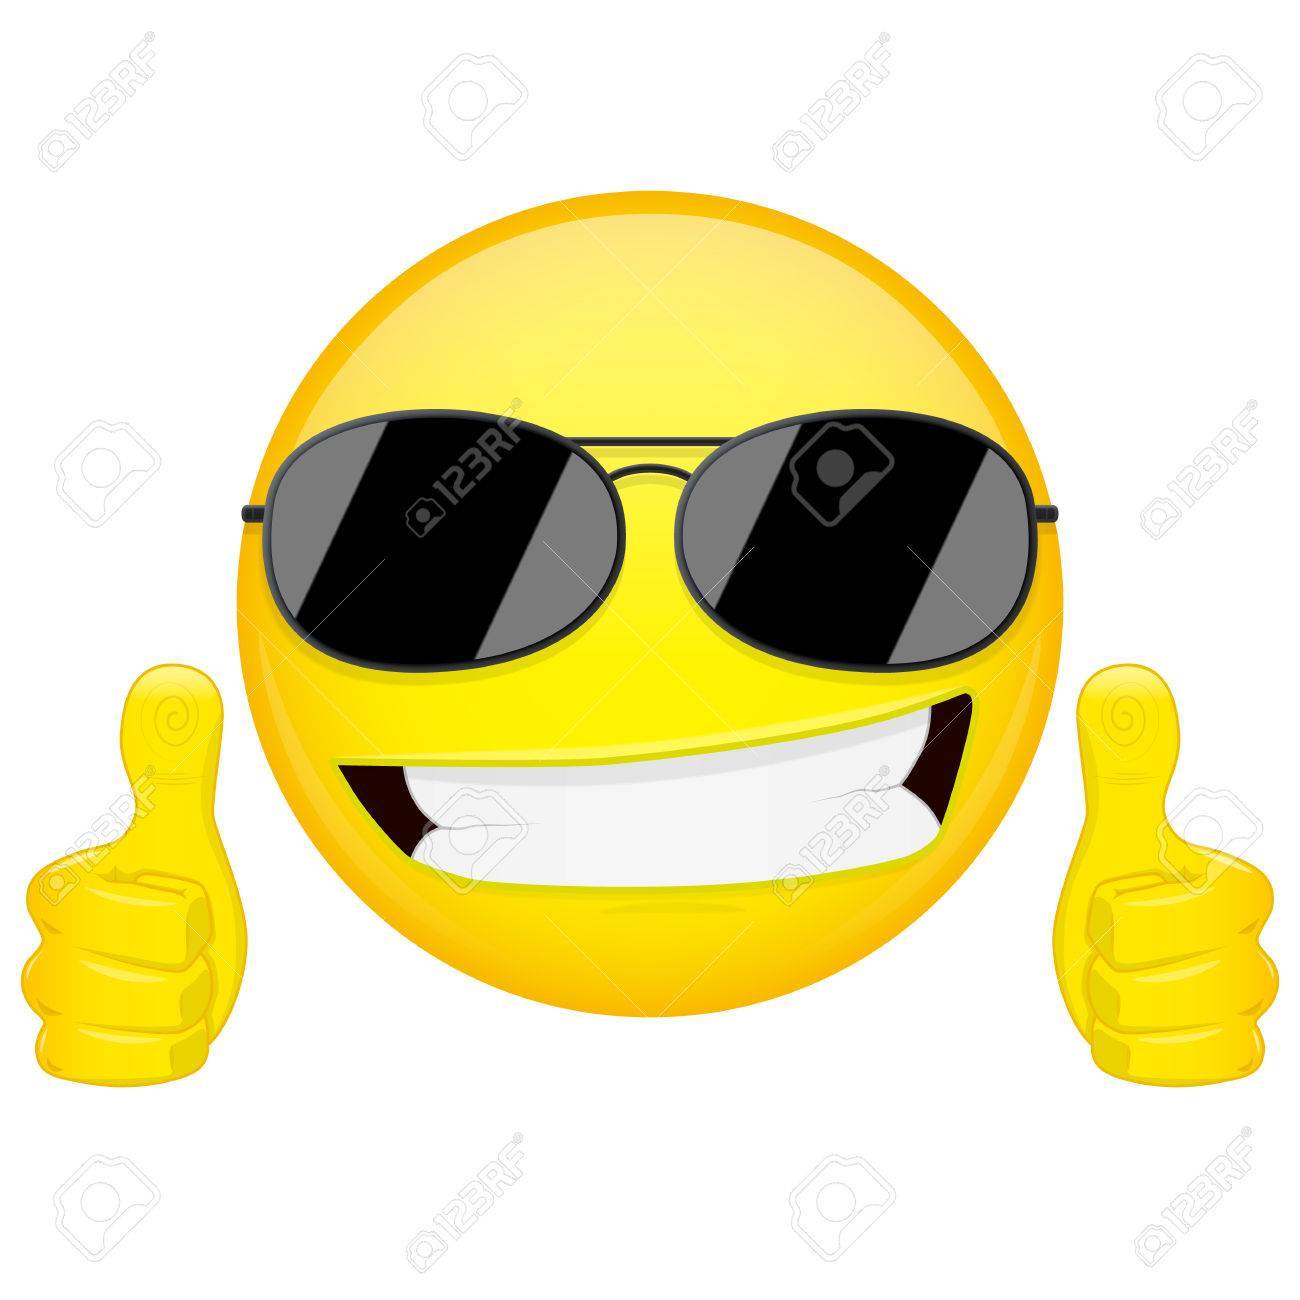 Good idea emoji. Thumbs up emotion. Cool guy with sunglasses emoticon.  Vector illustration